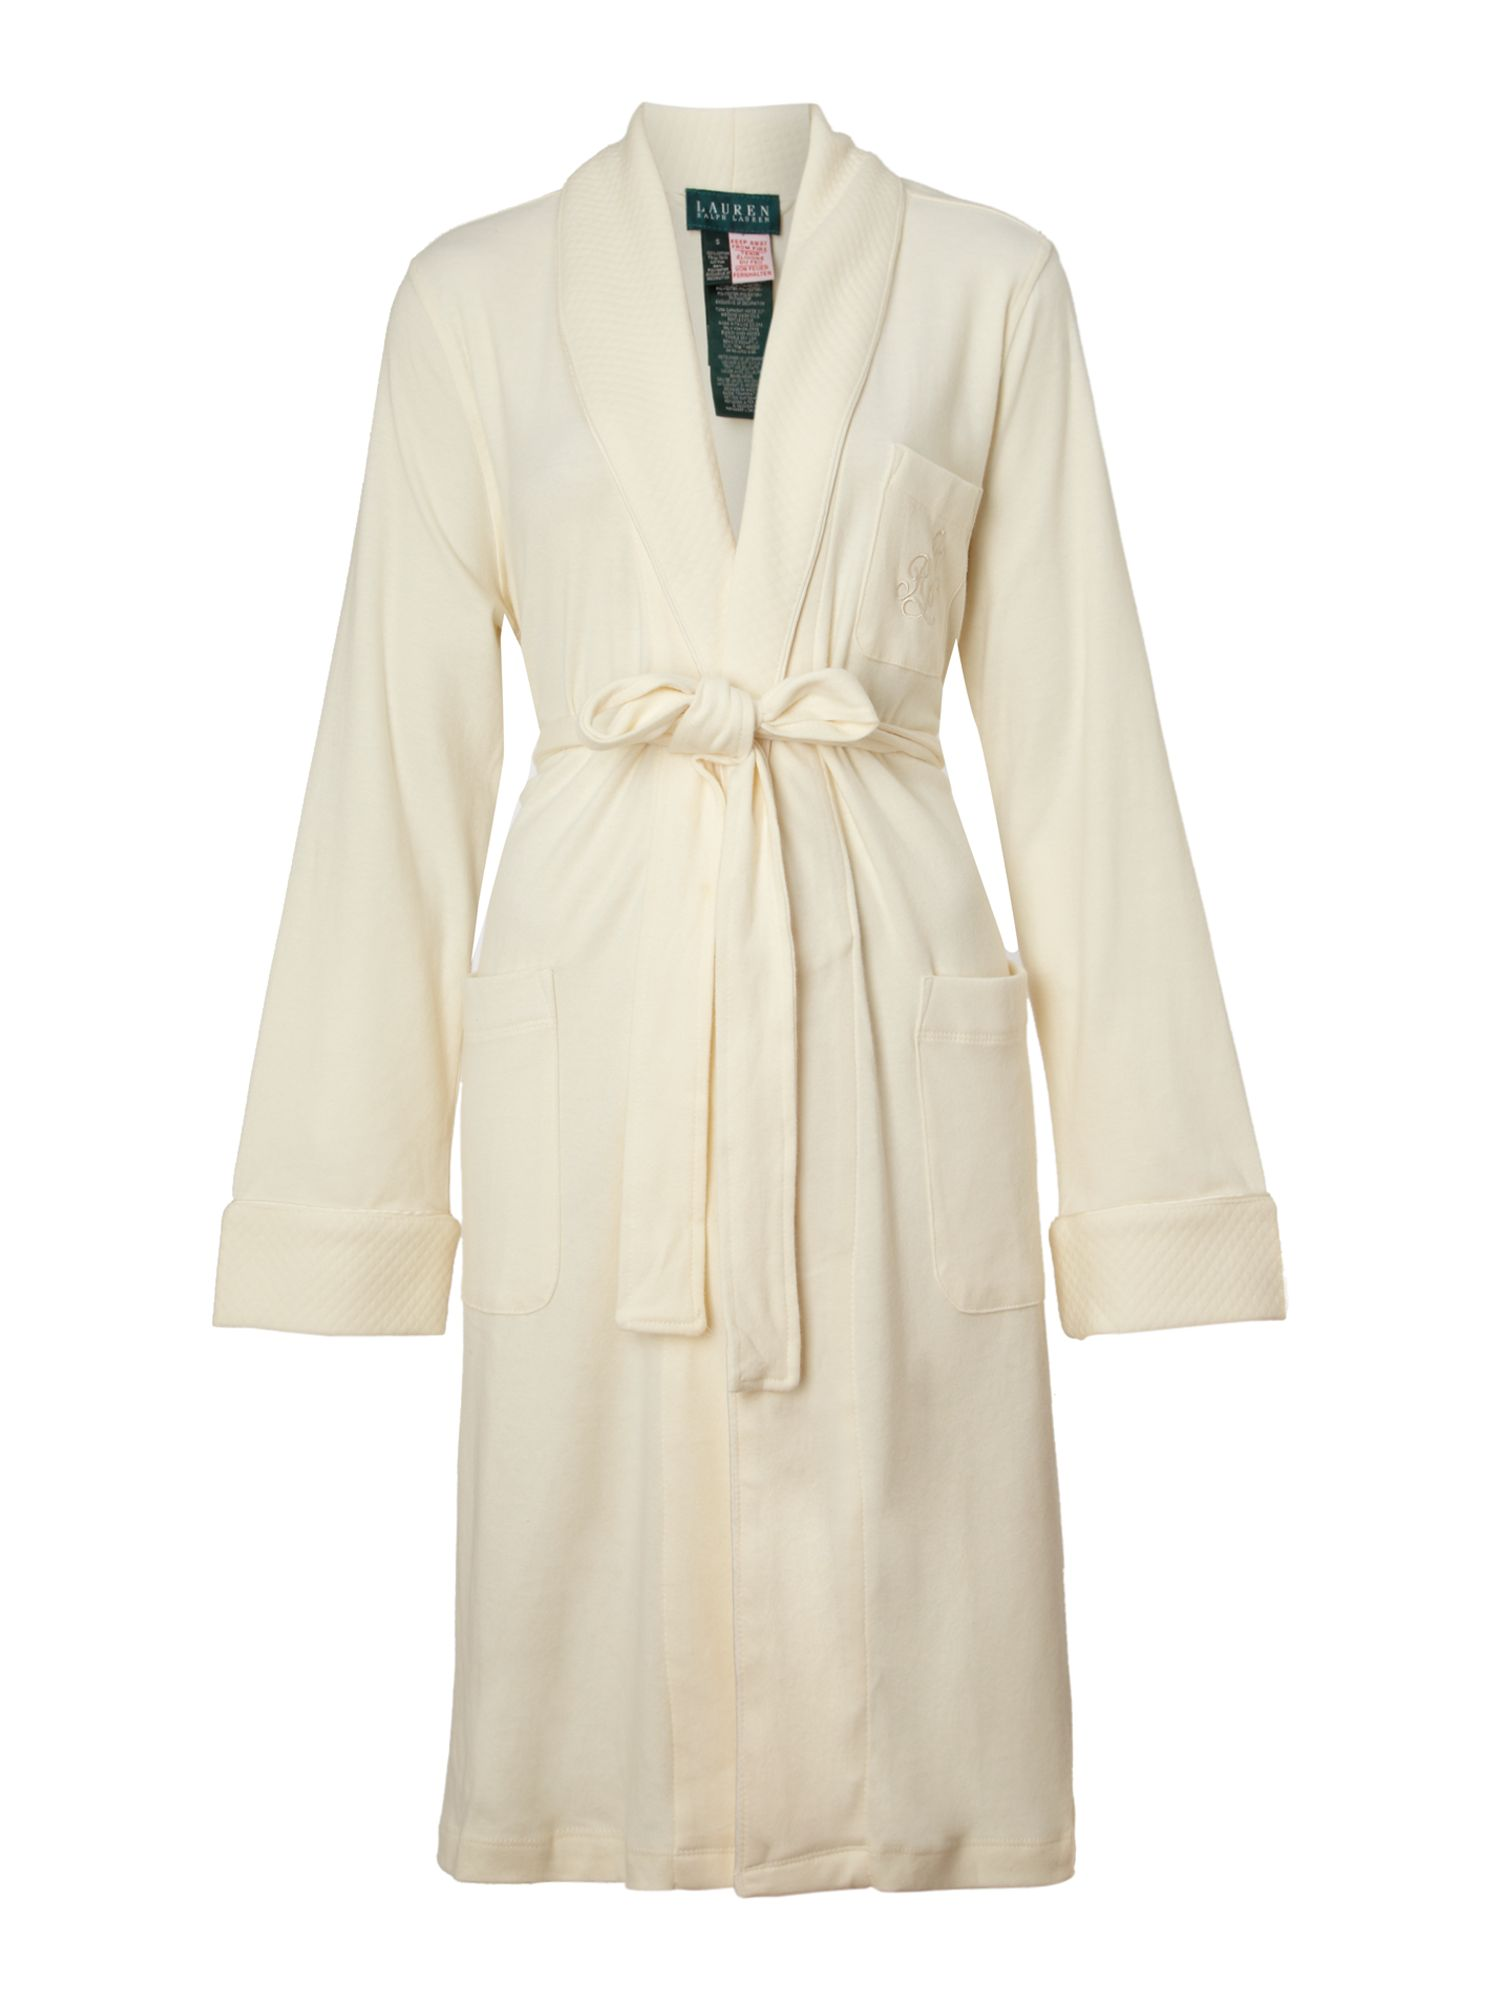 polo ralph lauren hartford lounge shawl collar wrap robe in natural lyst. Black Bedroom Furniture Sets. Home Design Ideas